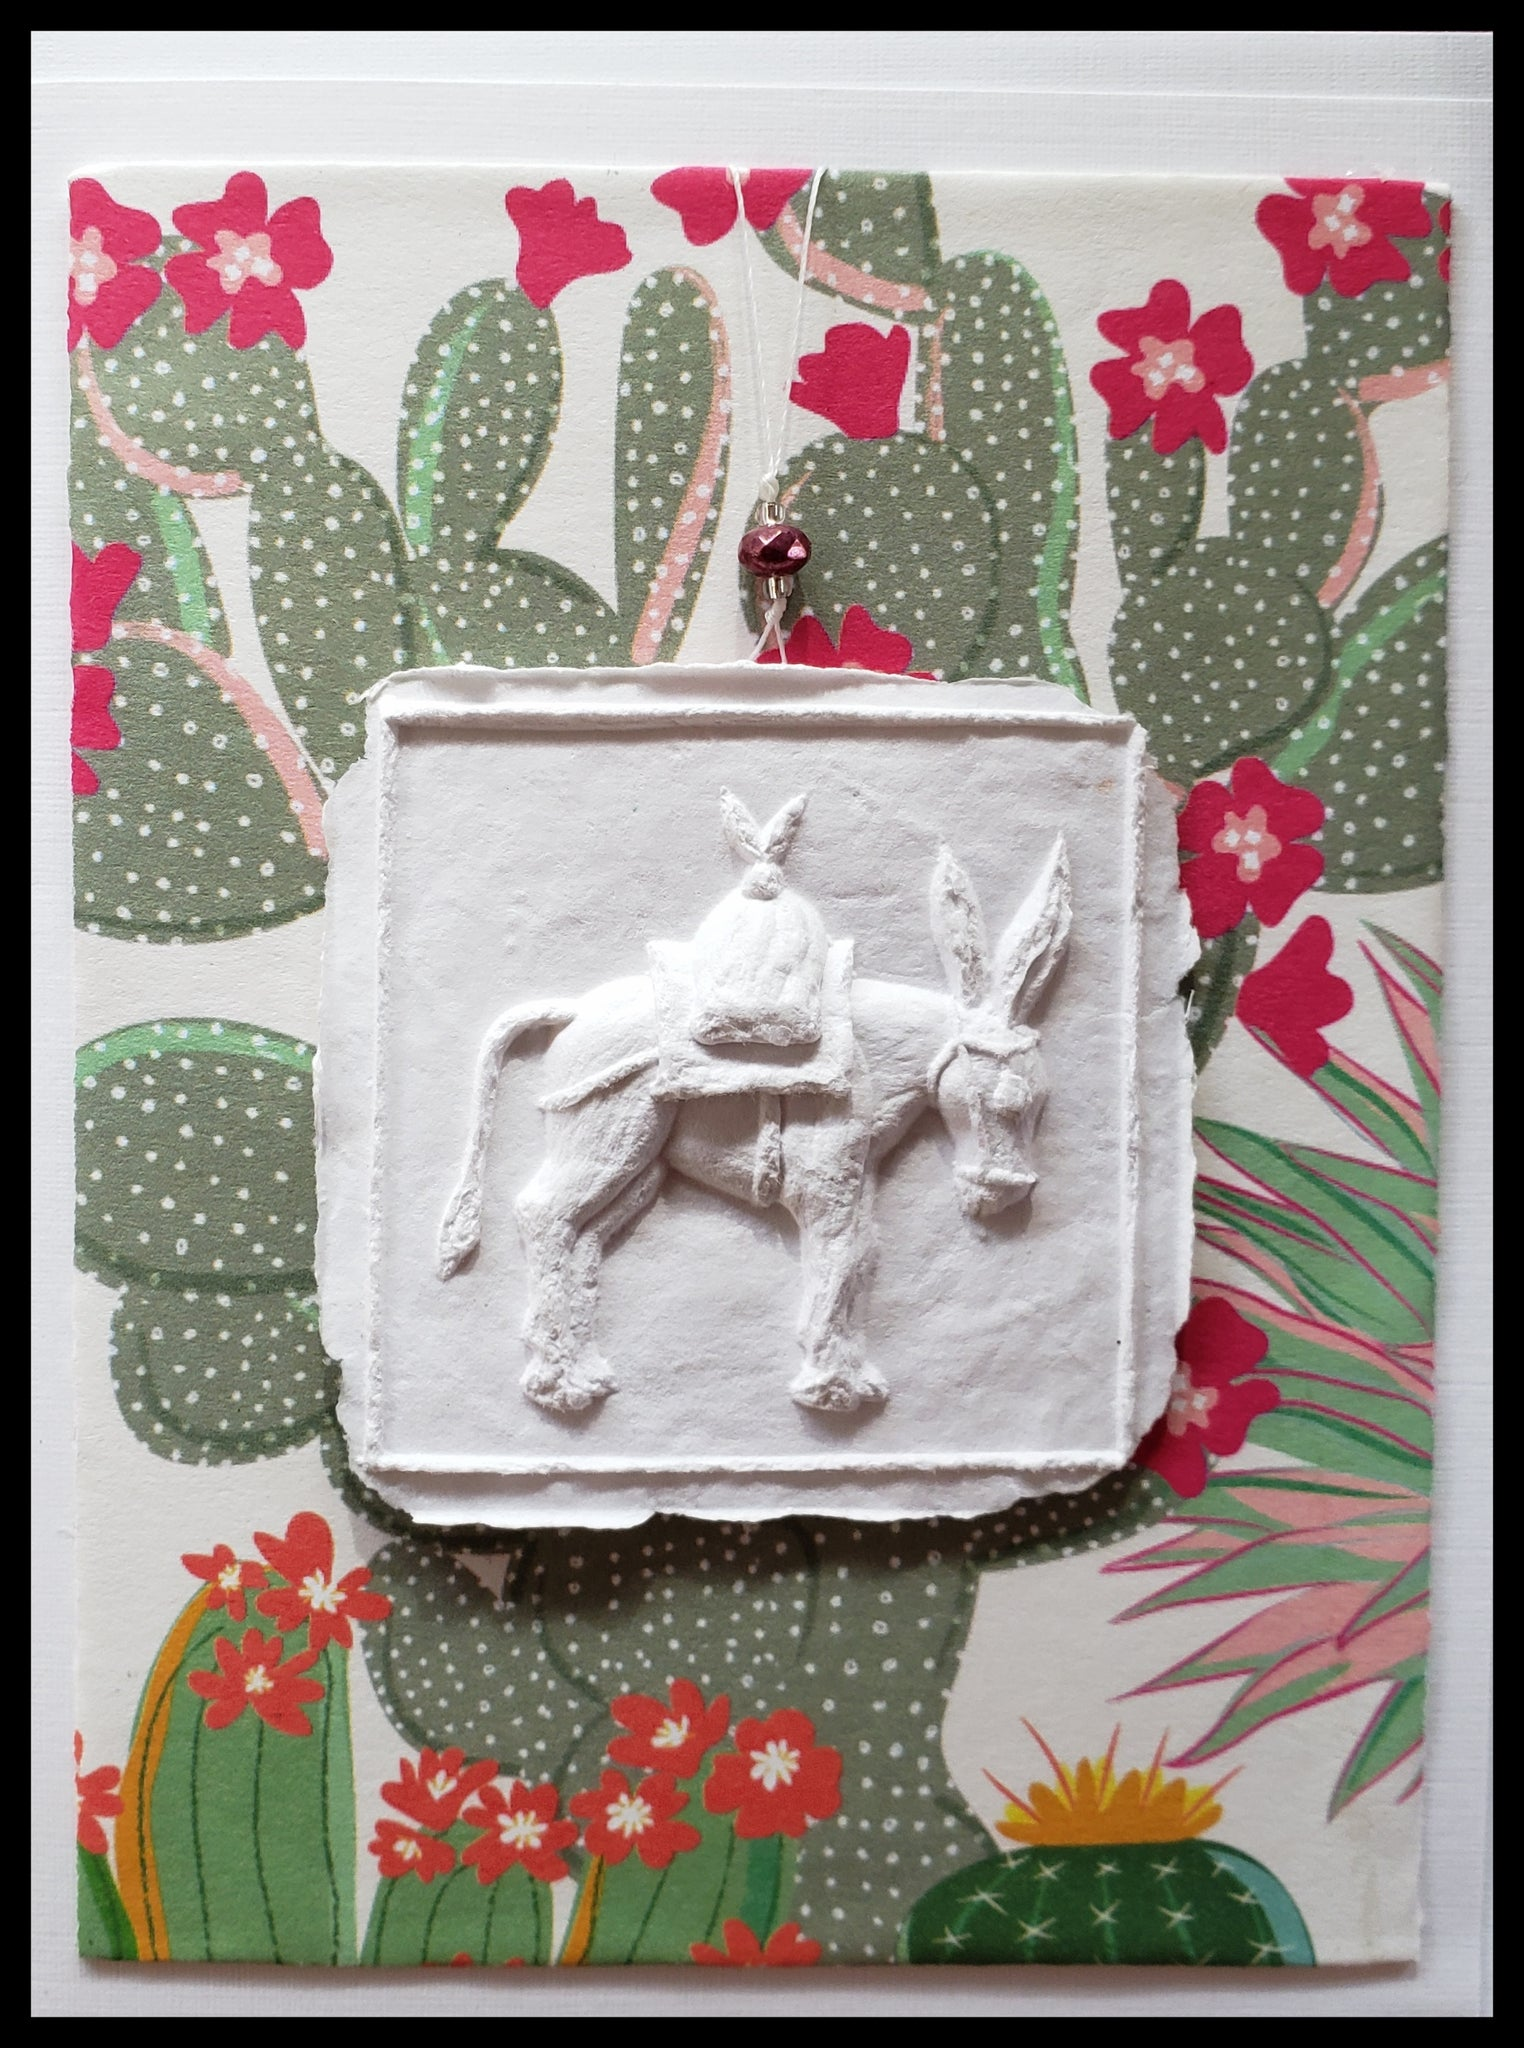 "donkey paper cast with cactus and flowers background handcrafted card blank inside removable ornament 4.5"" x 6"" with envelope ADA The Gilded Page Santa Fe"